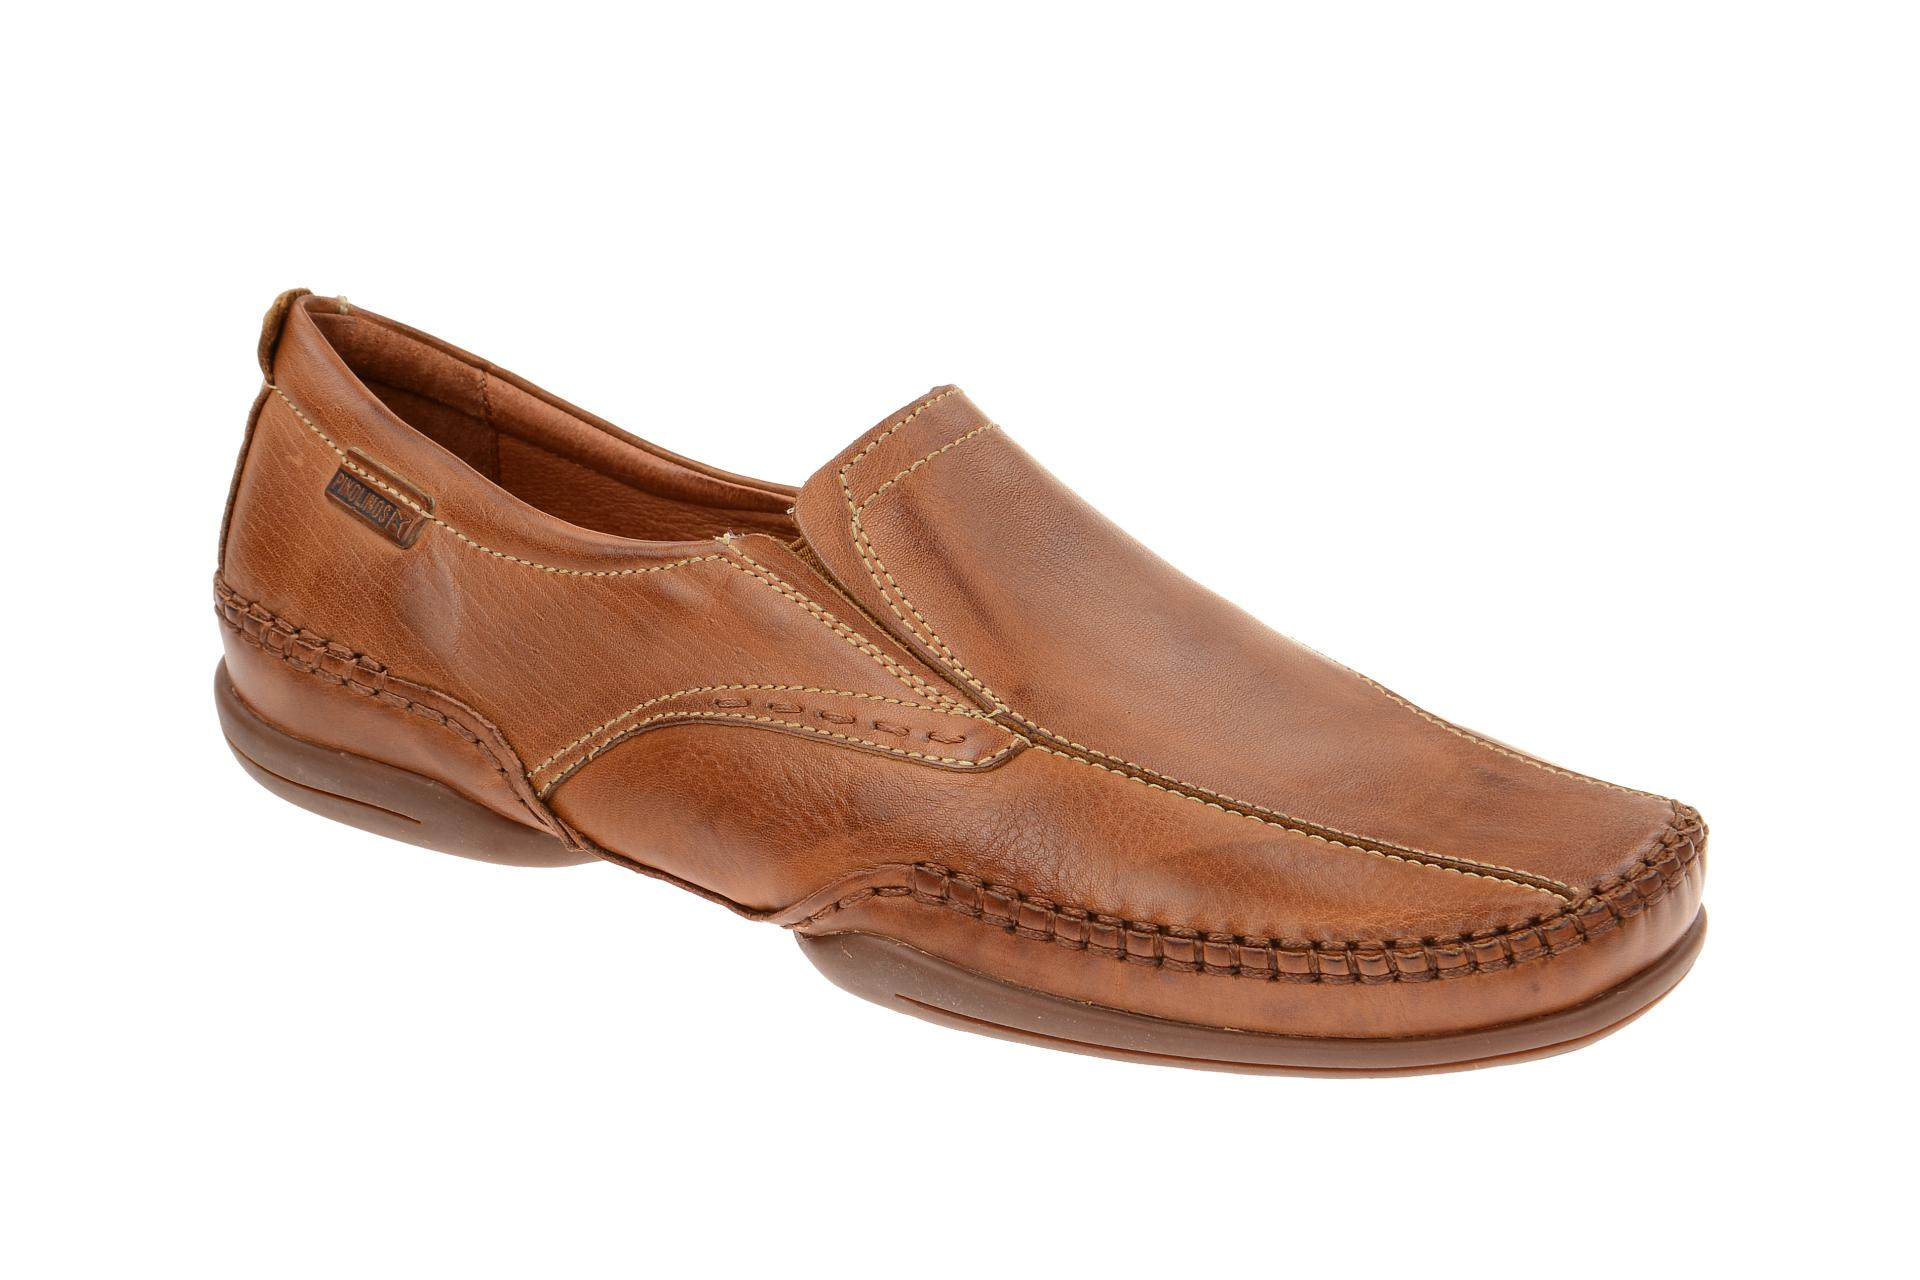 pikolinos puerto rico brogues 03a 6222 shoes brandy brown mens slipper new ebay. Black Bedroom Furniture Sets. Home Design Ideas